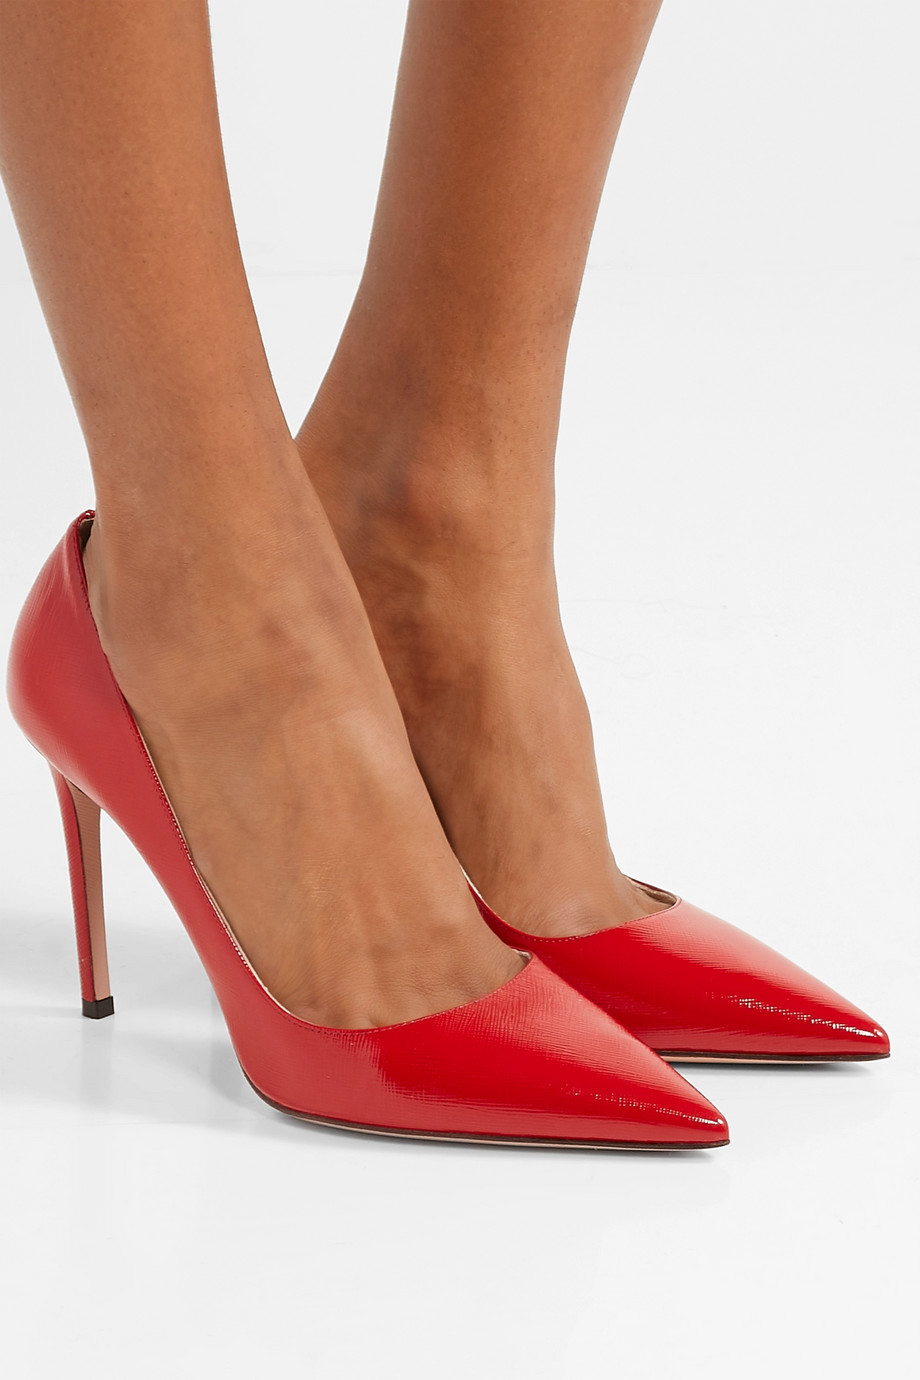 Prada 100 glossed textured-leather pumps